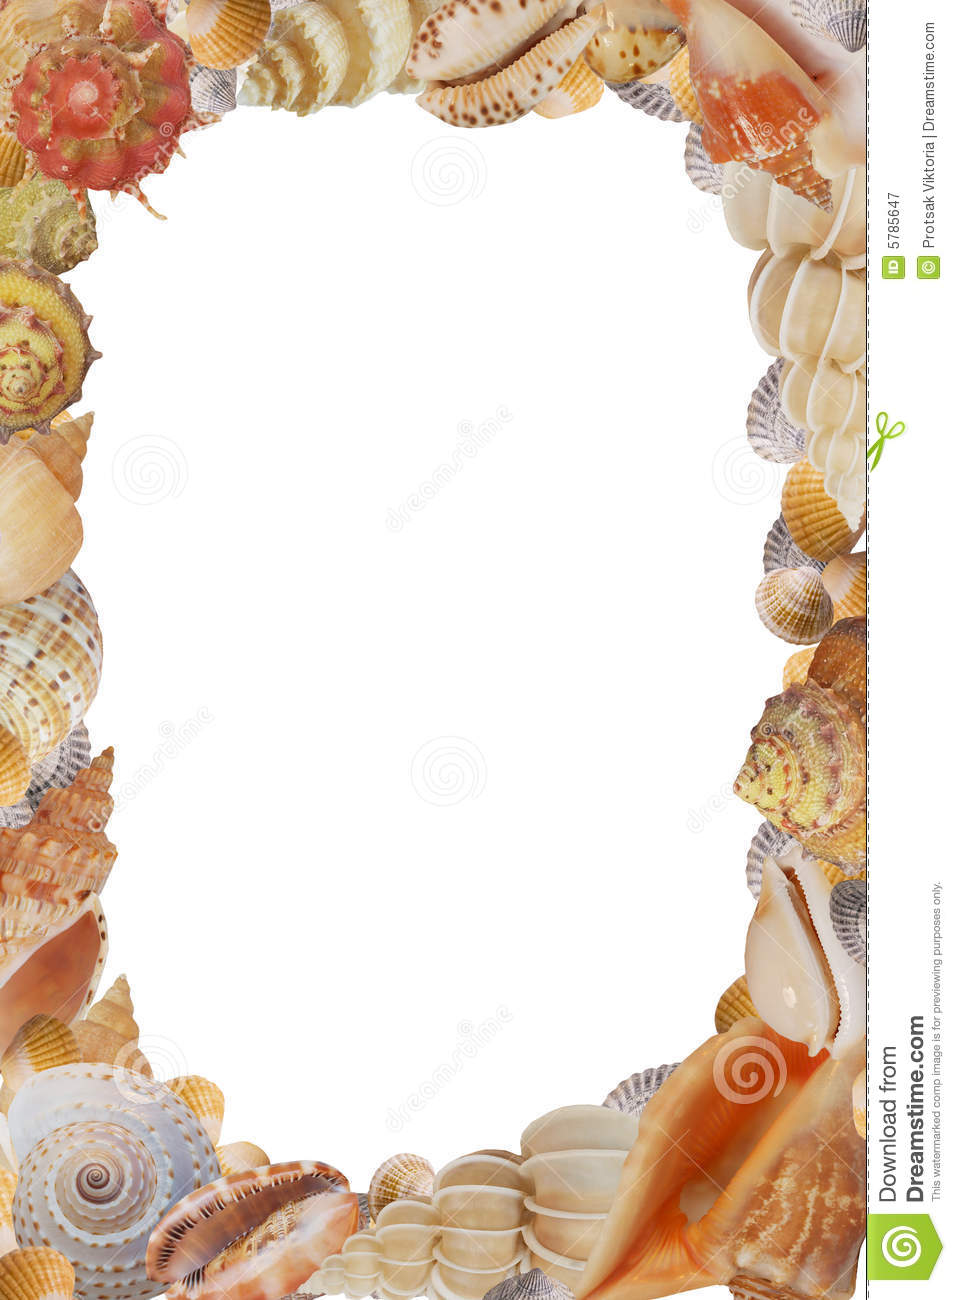 frame from sea shell stock image  image of natural  life